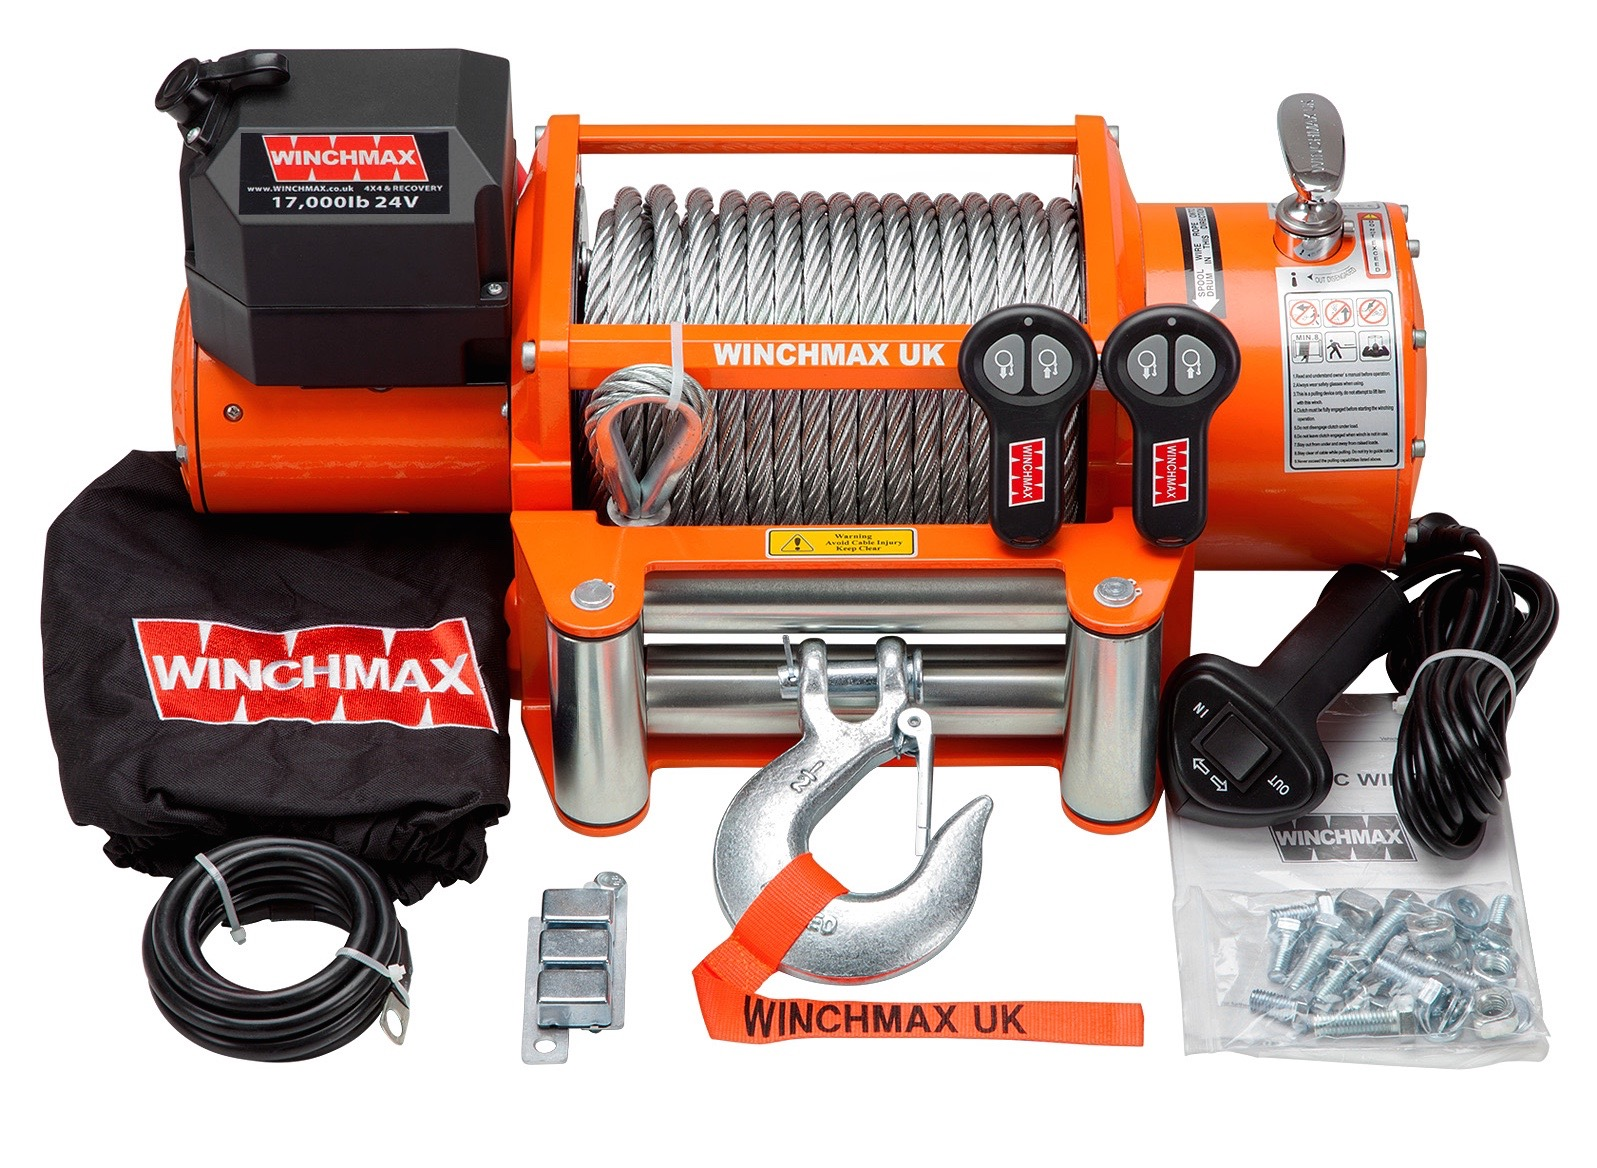 product_view.php?pid=WINCHMAX 17000LB 24V ELECTRIC STEEL CABLE WINCH WITH WIRELESS REMOTES